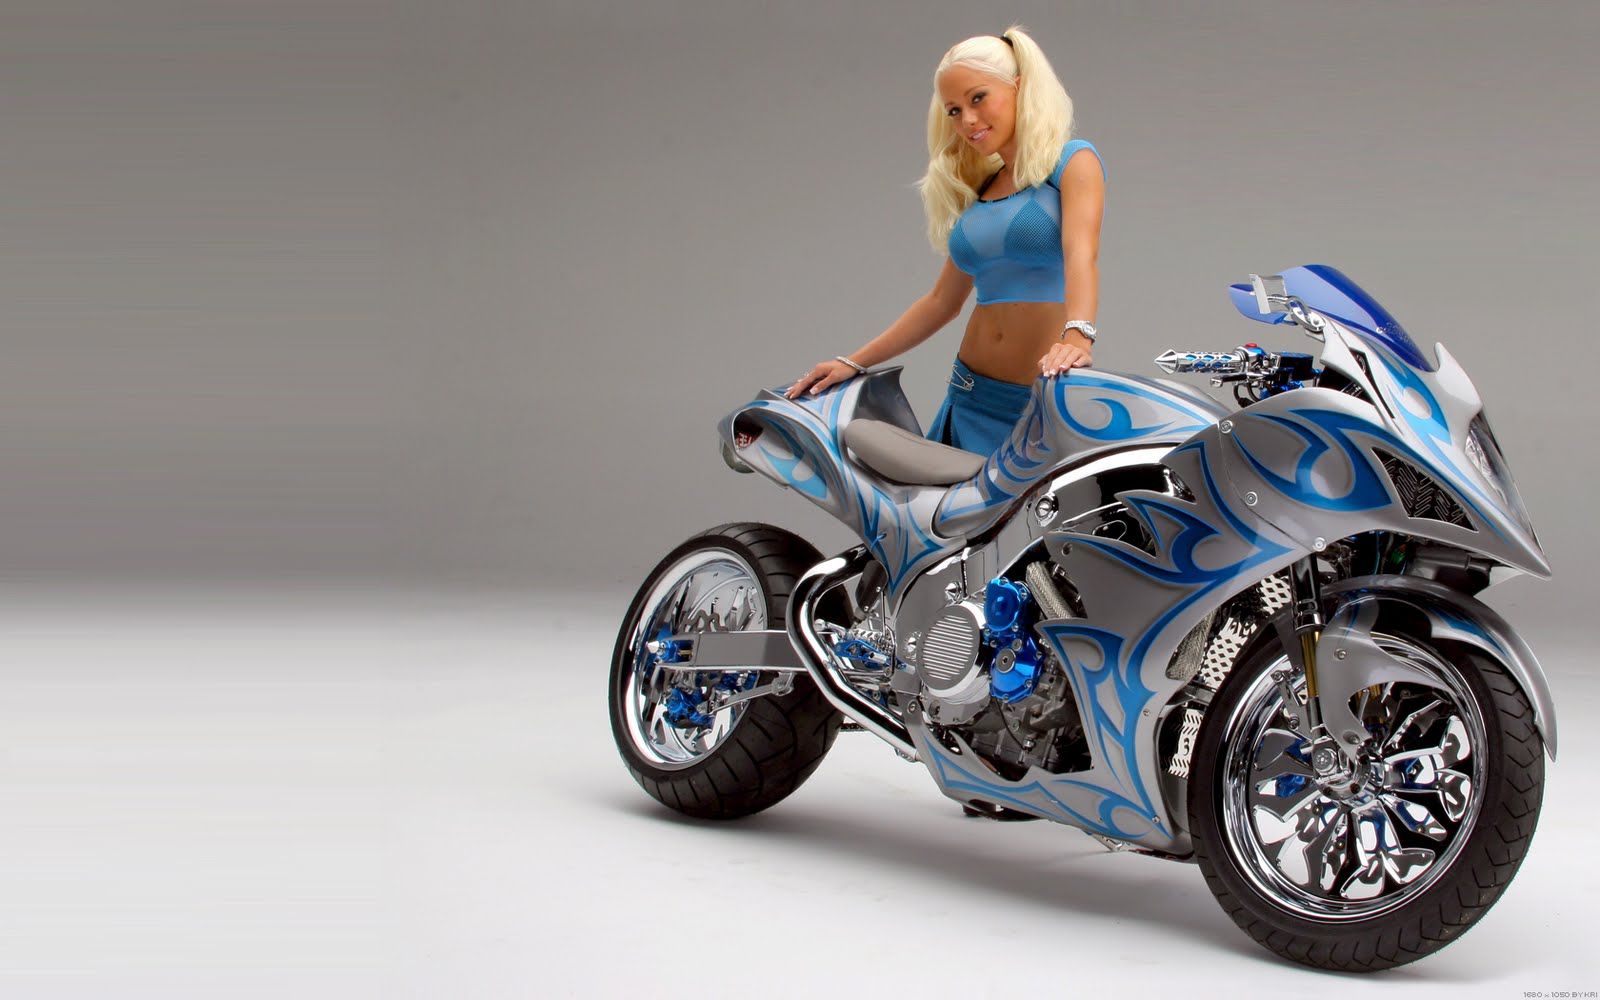 Magec Fatamor Motorcycle Wallpaper Beautiful Girl With